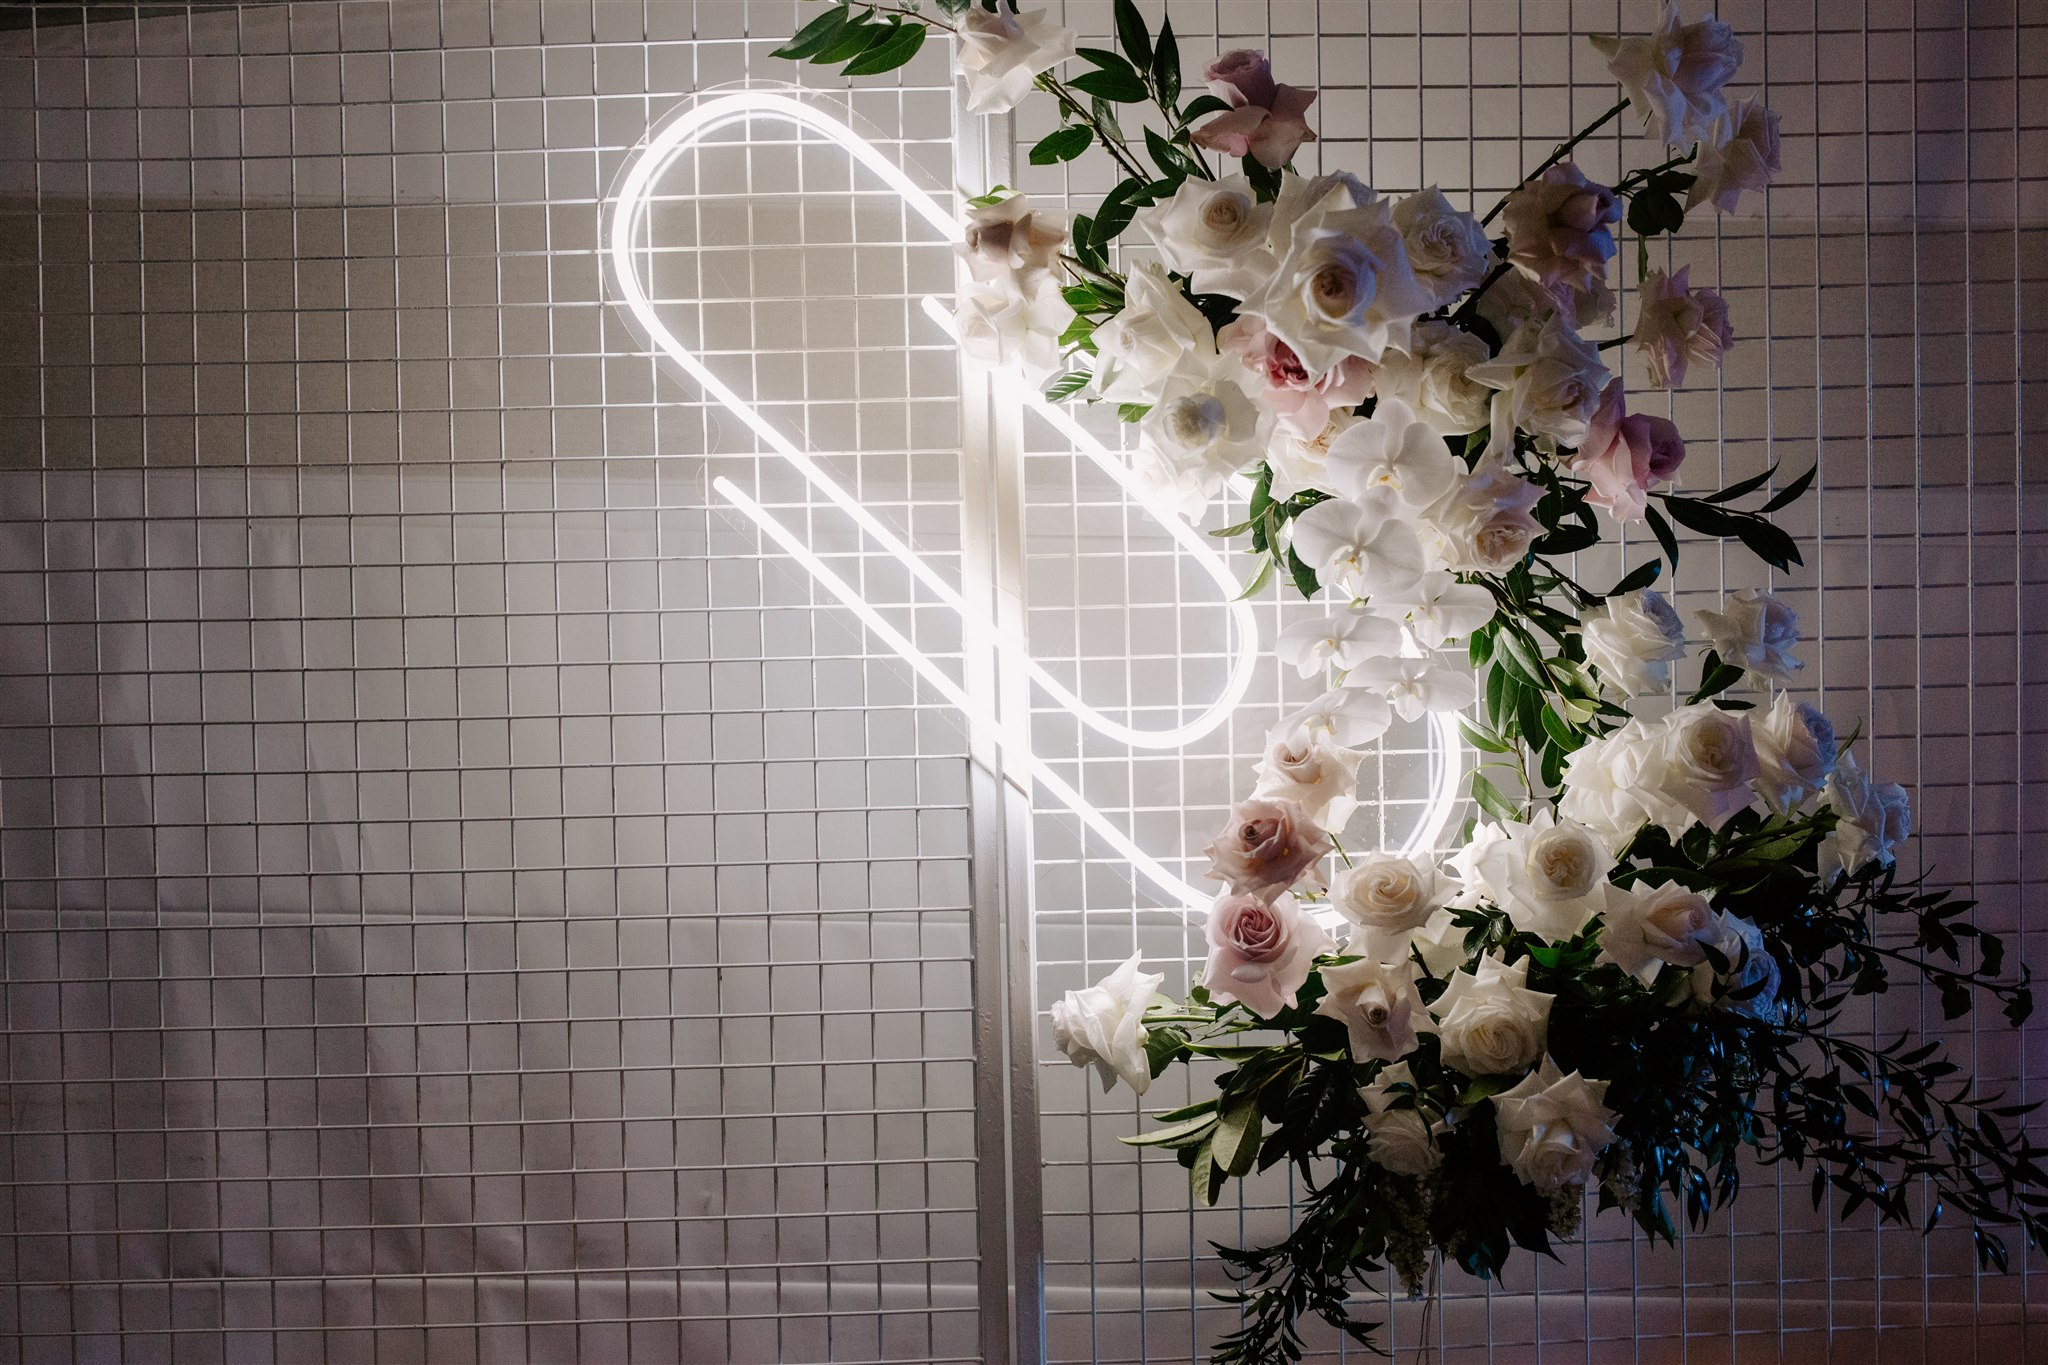 Neon sign floral feature with roses and orchids